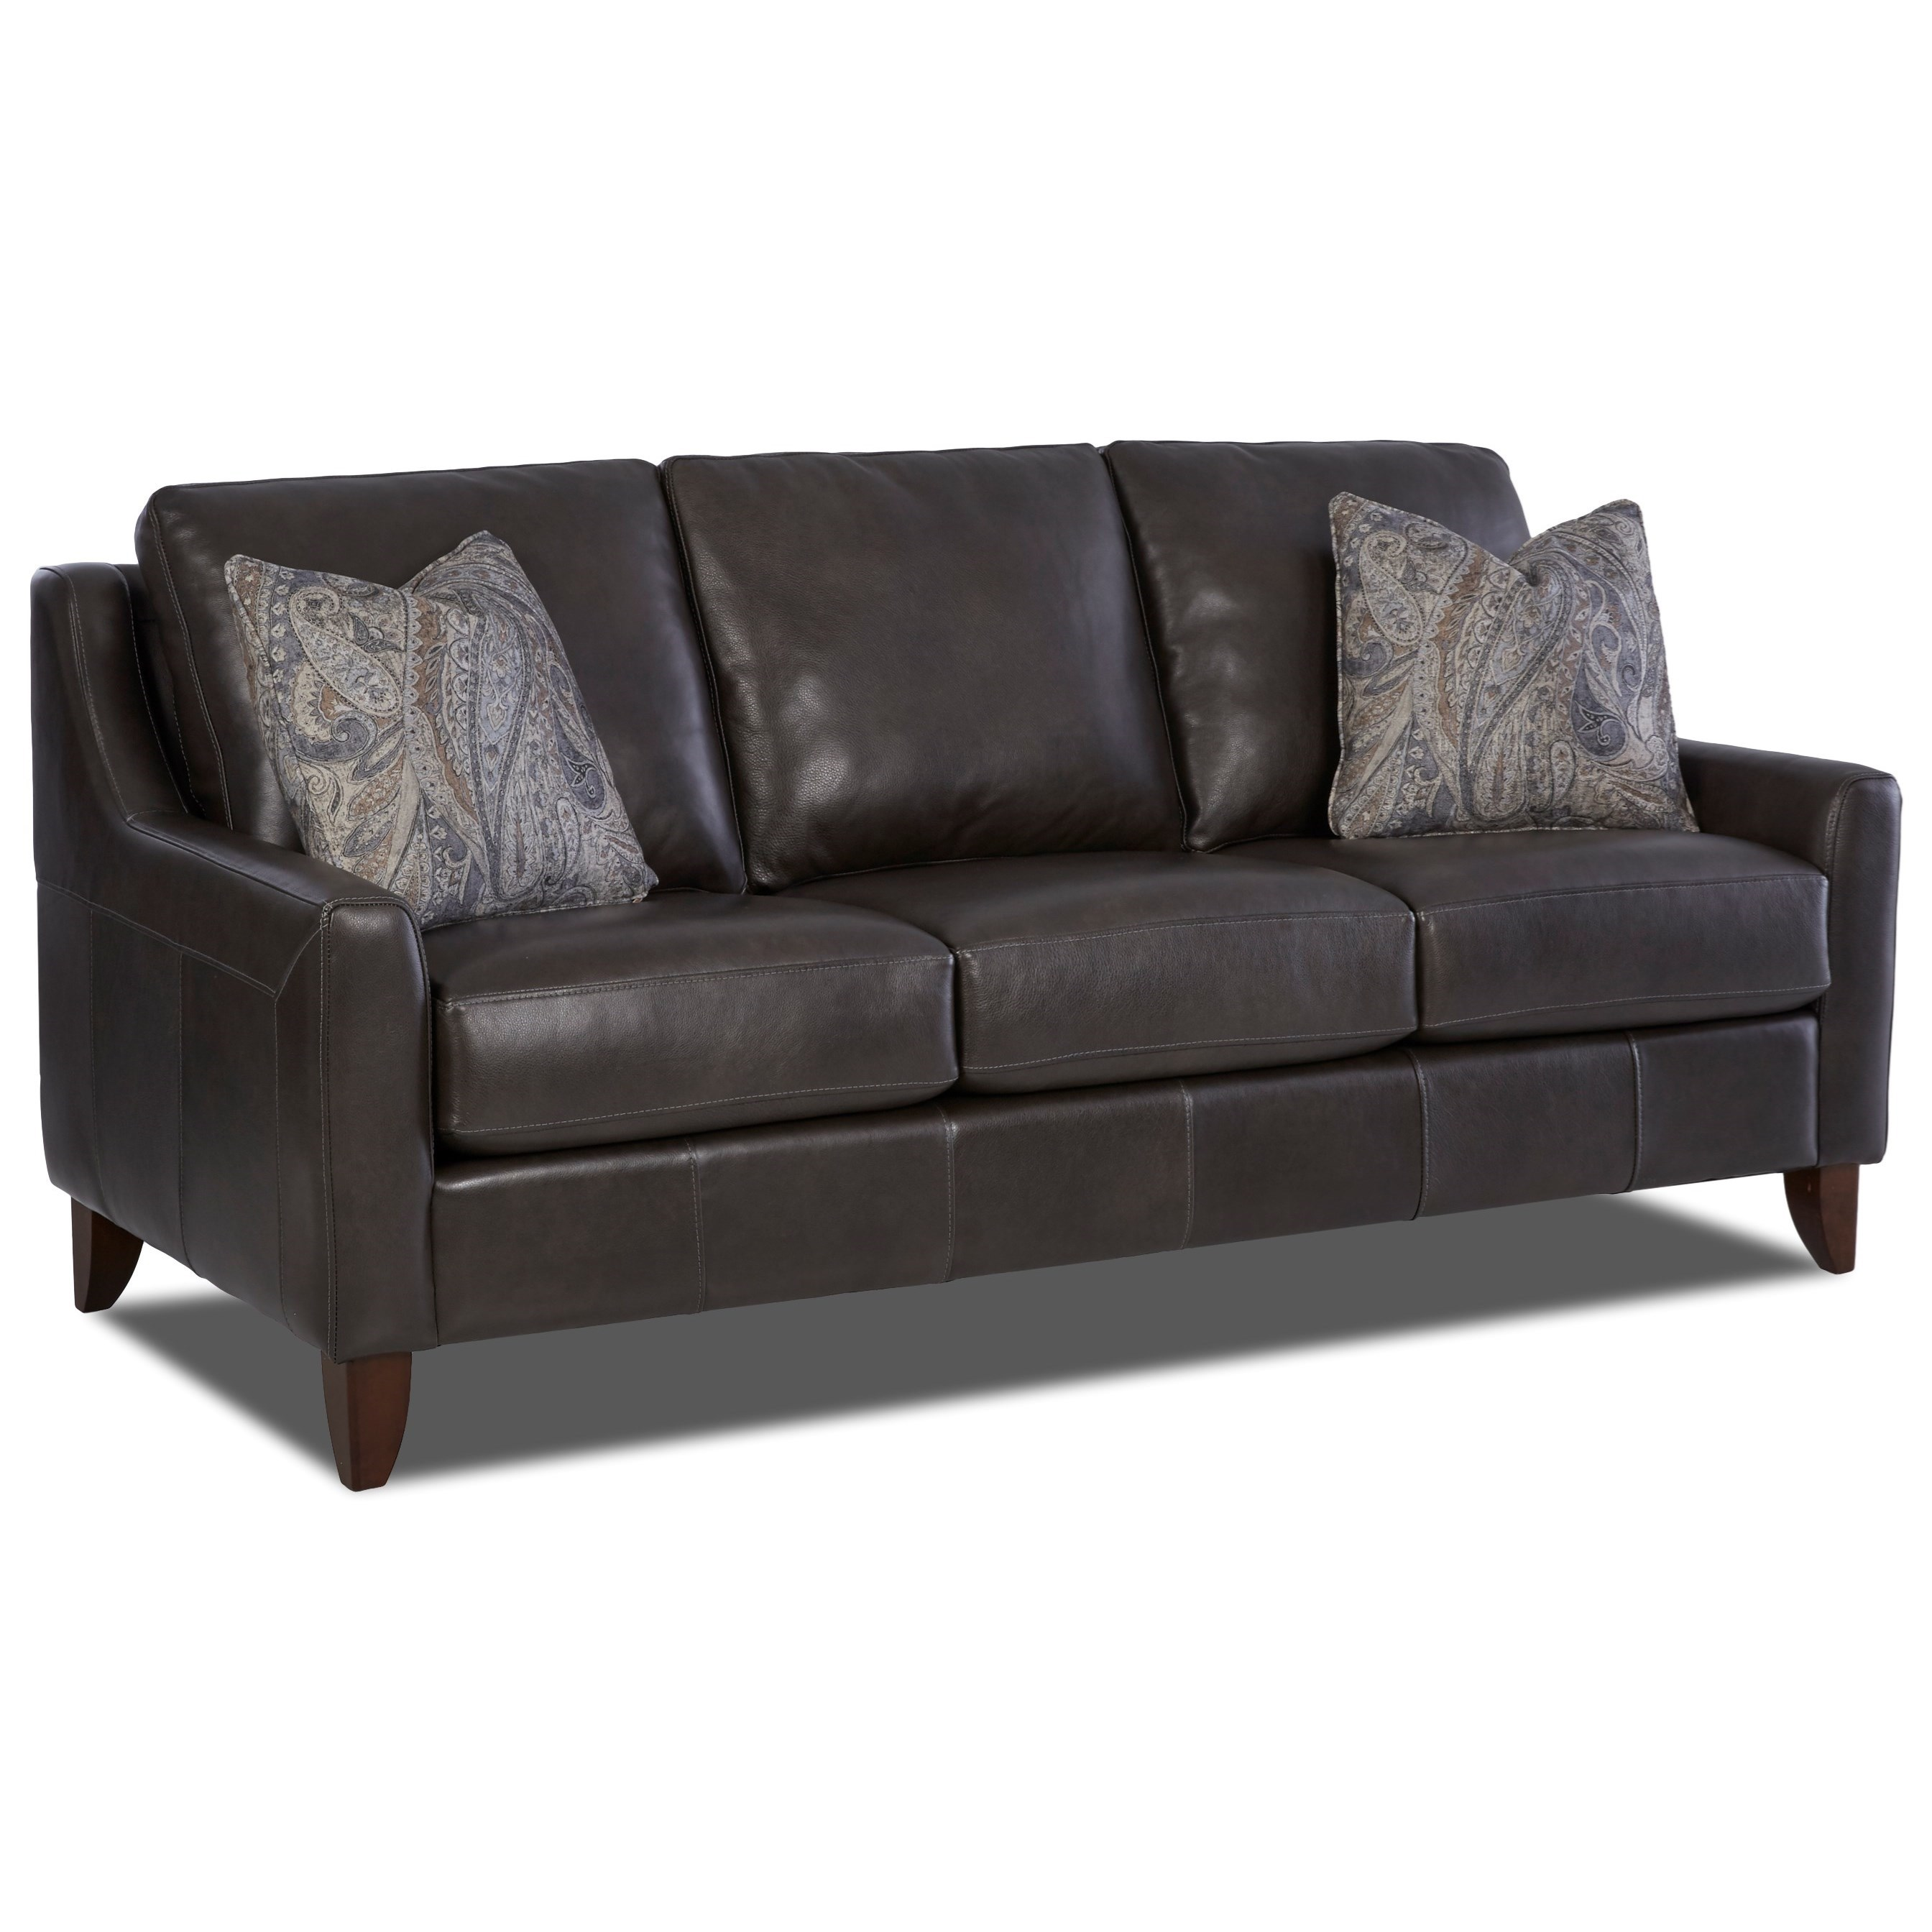 Leather Sofa with Track Arms and Fabric Pillows